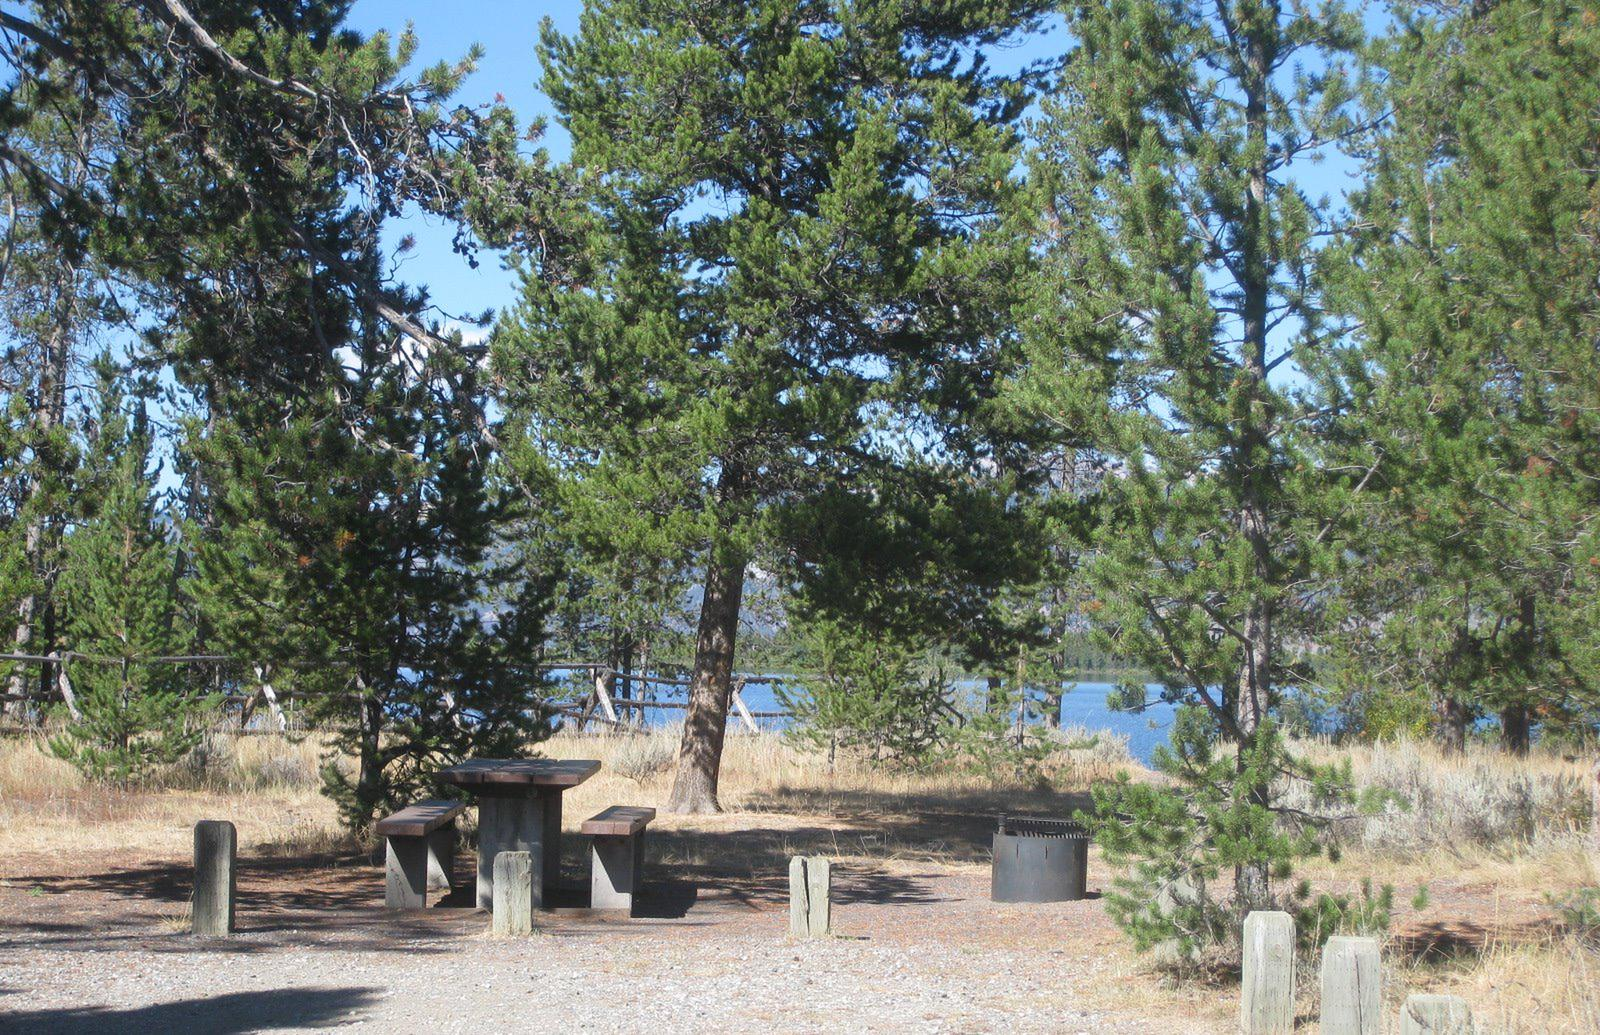 Site 21, campsite surrounded by pine trees, picnic table & fire ringSite 21